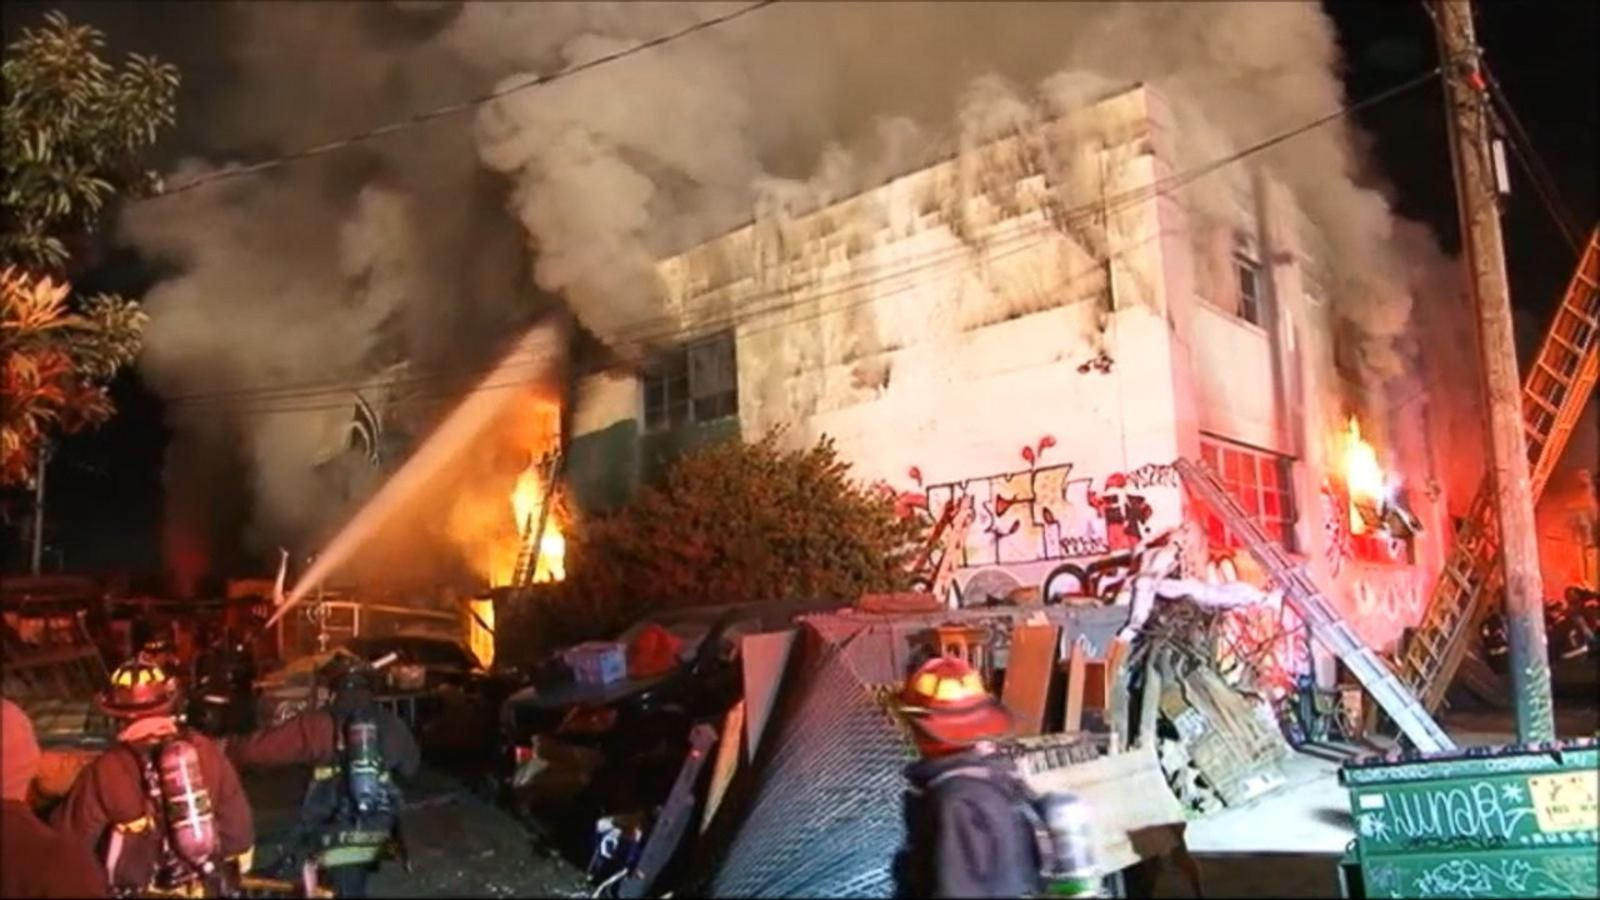 VIDEO: Refrigerator May Have Sparked Oakland Warehouse Fire, Officials Say